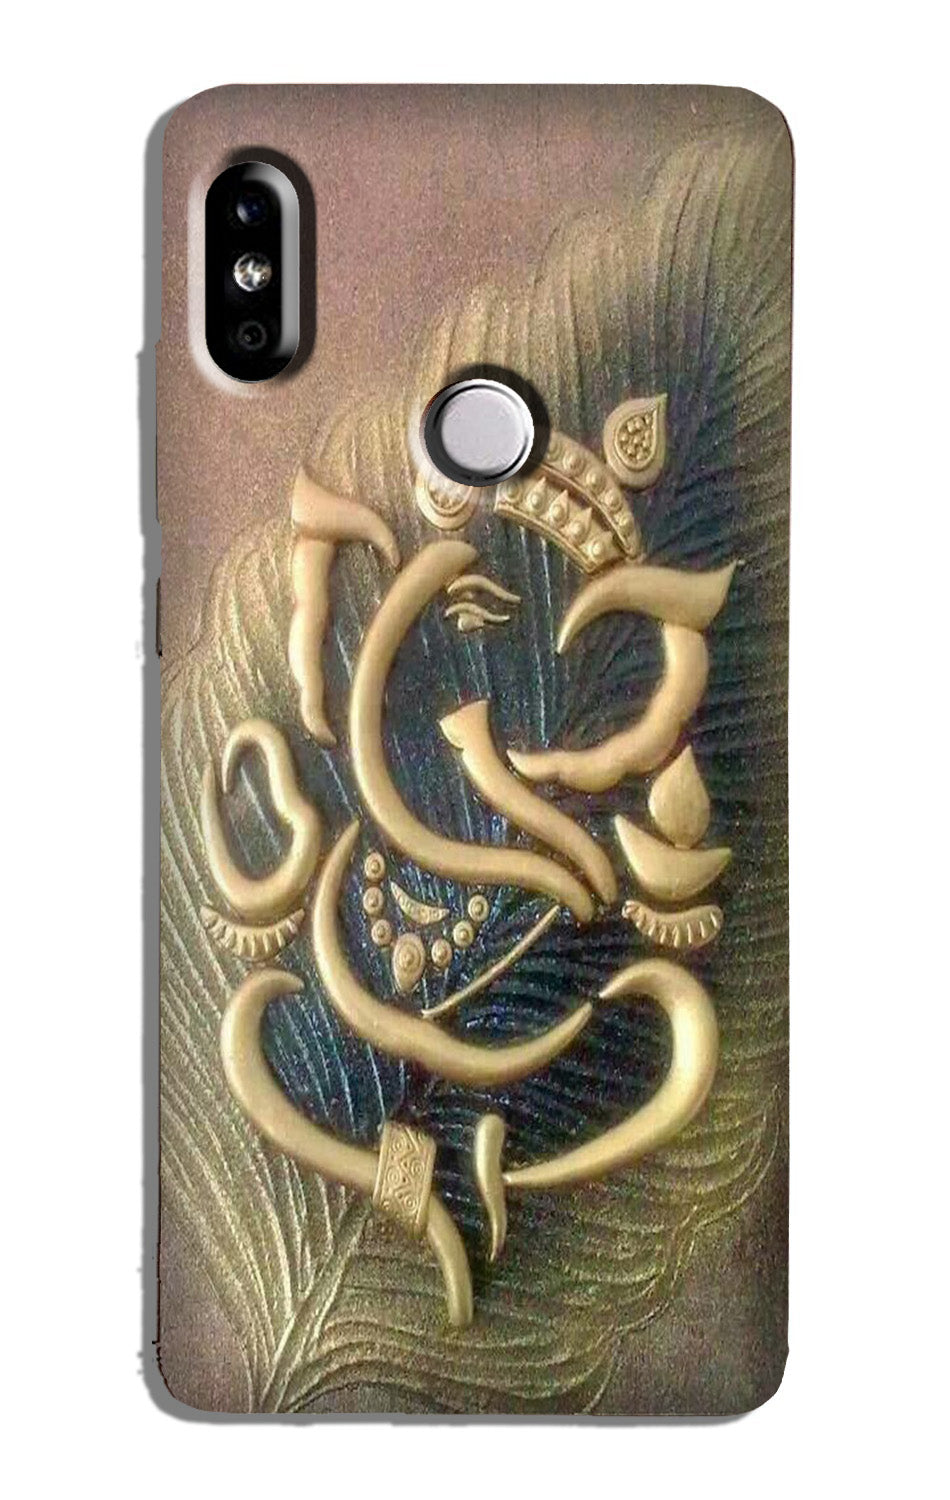 Lord Ganesha Case for Redmi Note 6 Pro